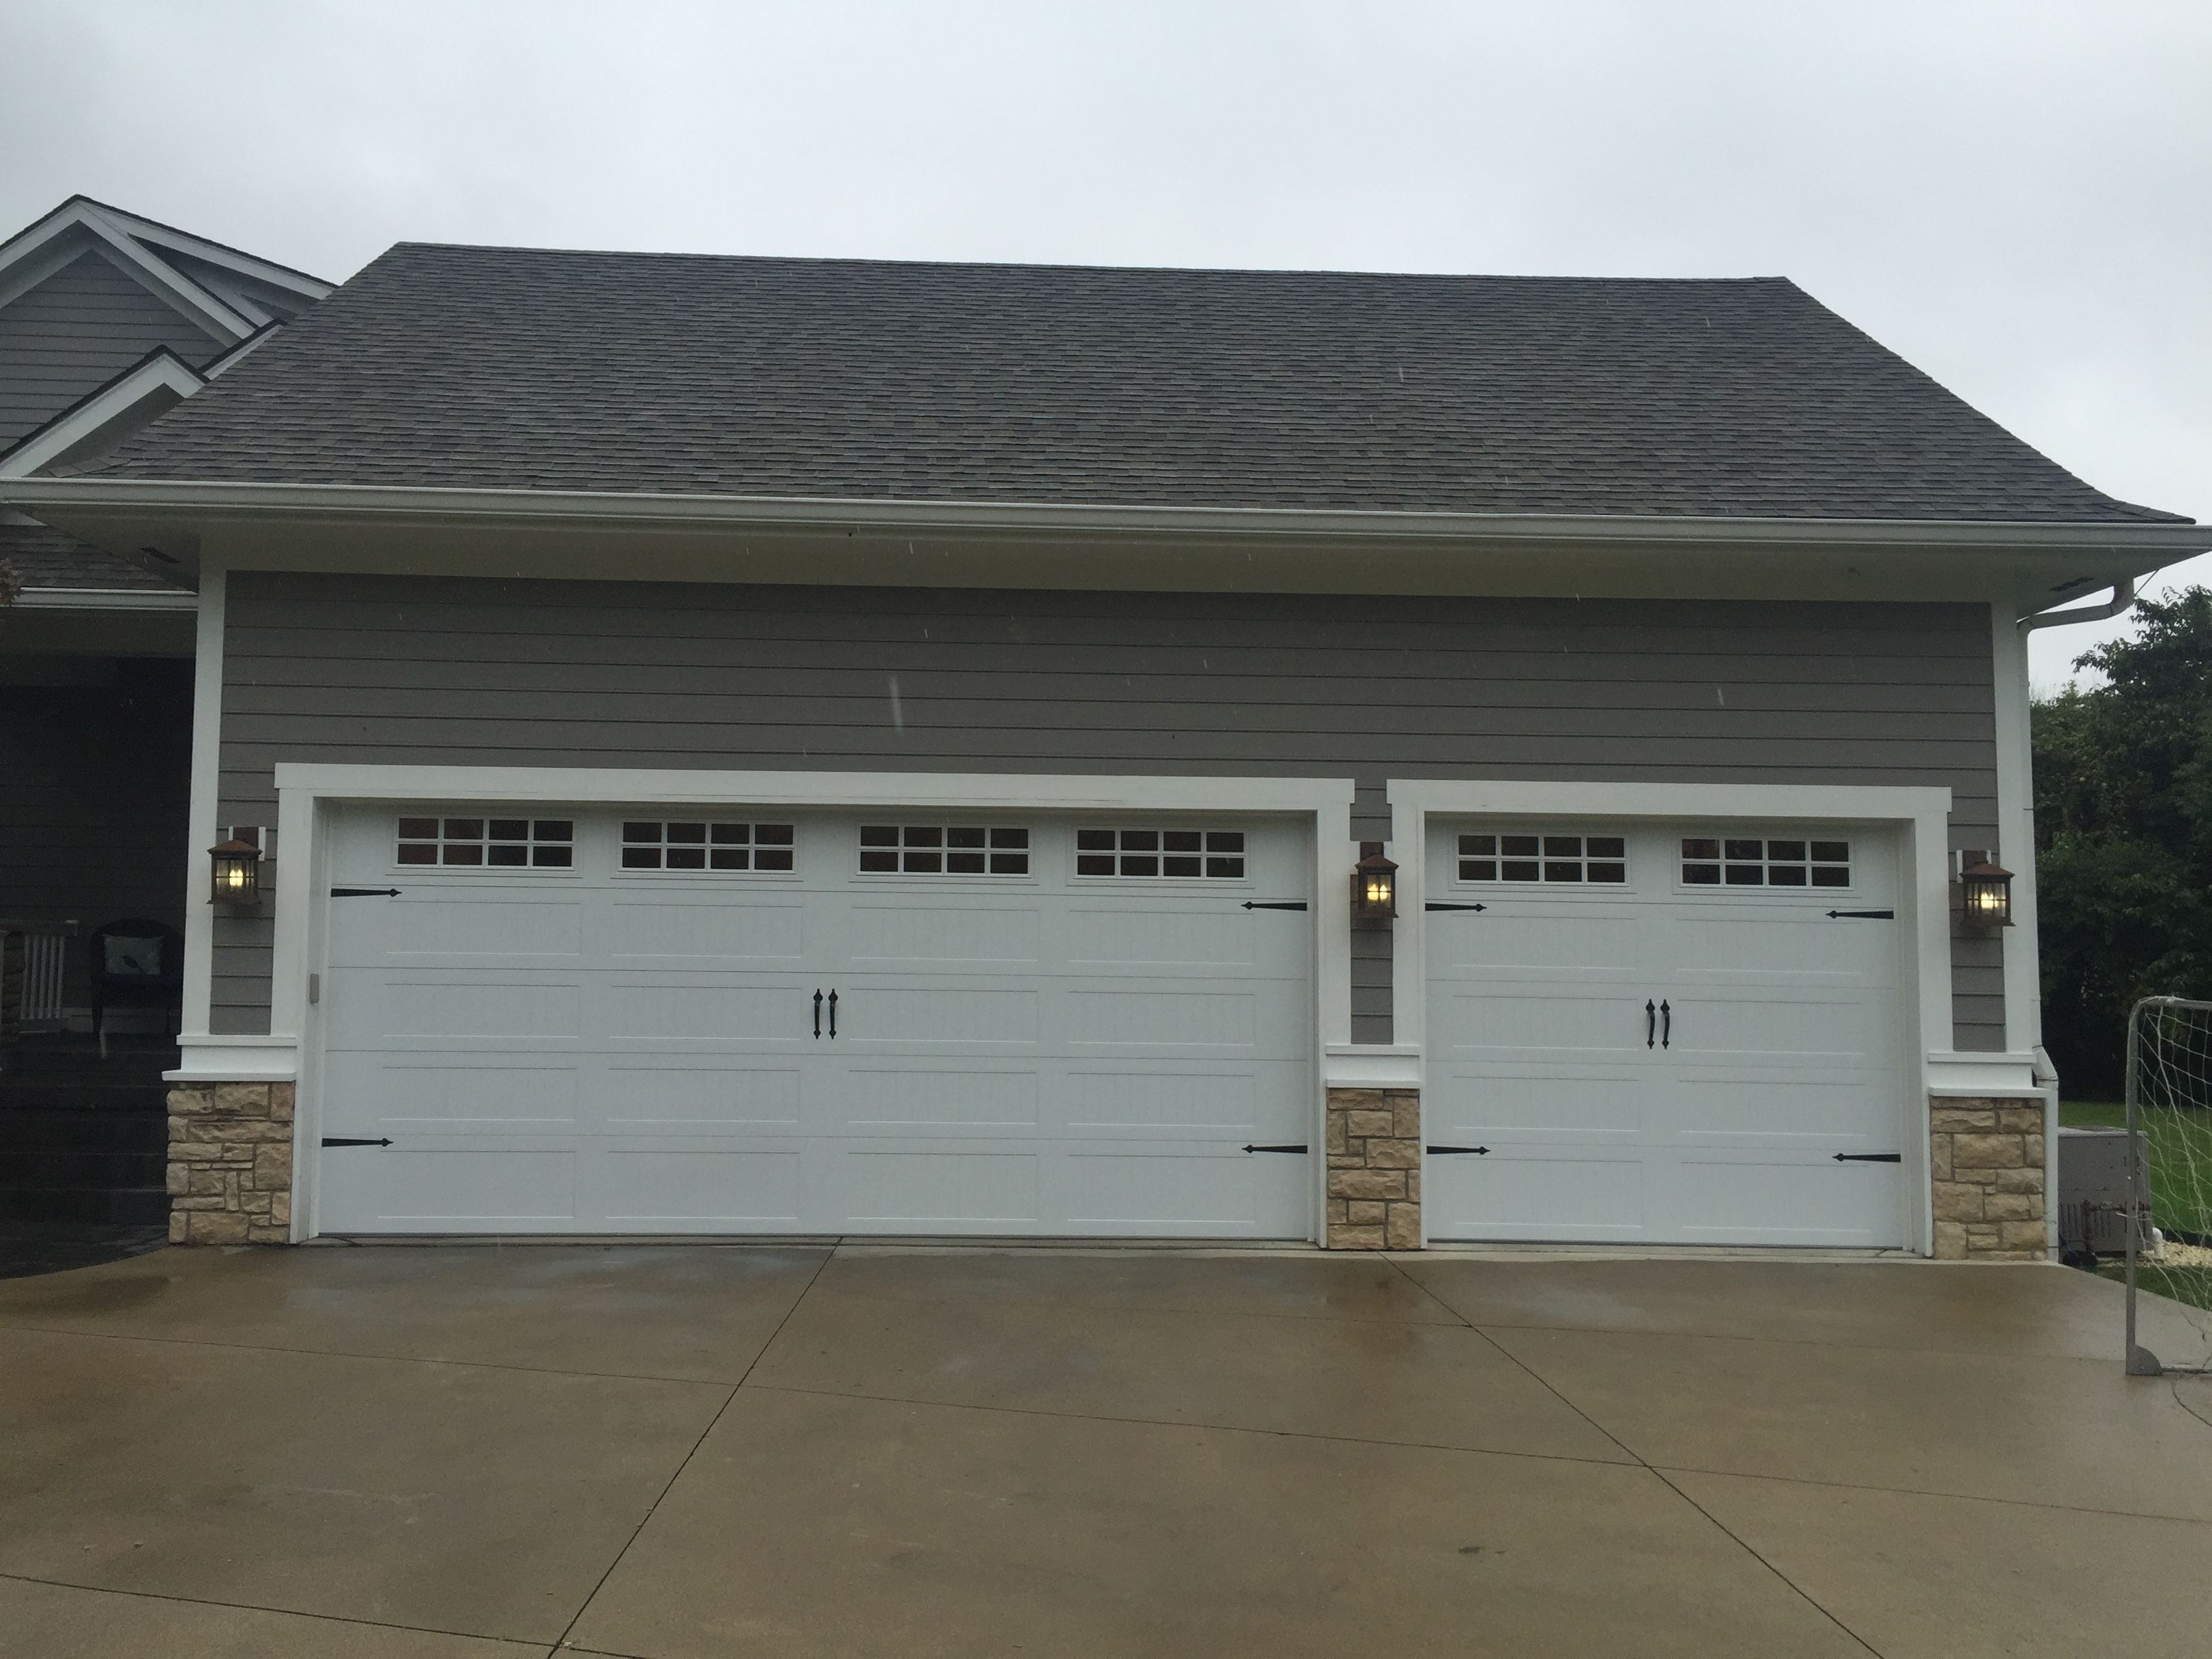 Beautiful chi model stamped carriage house garage doors with